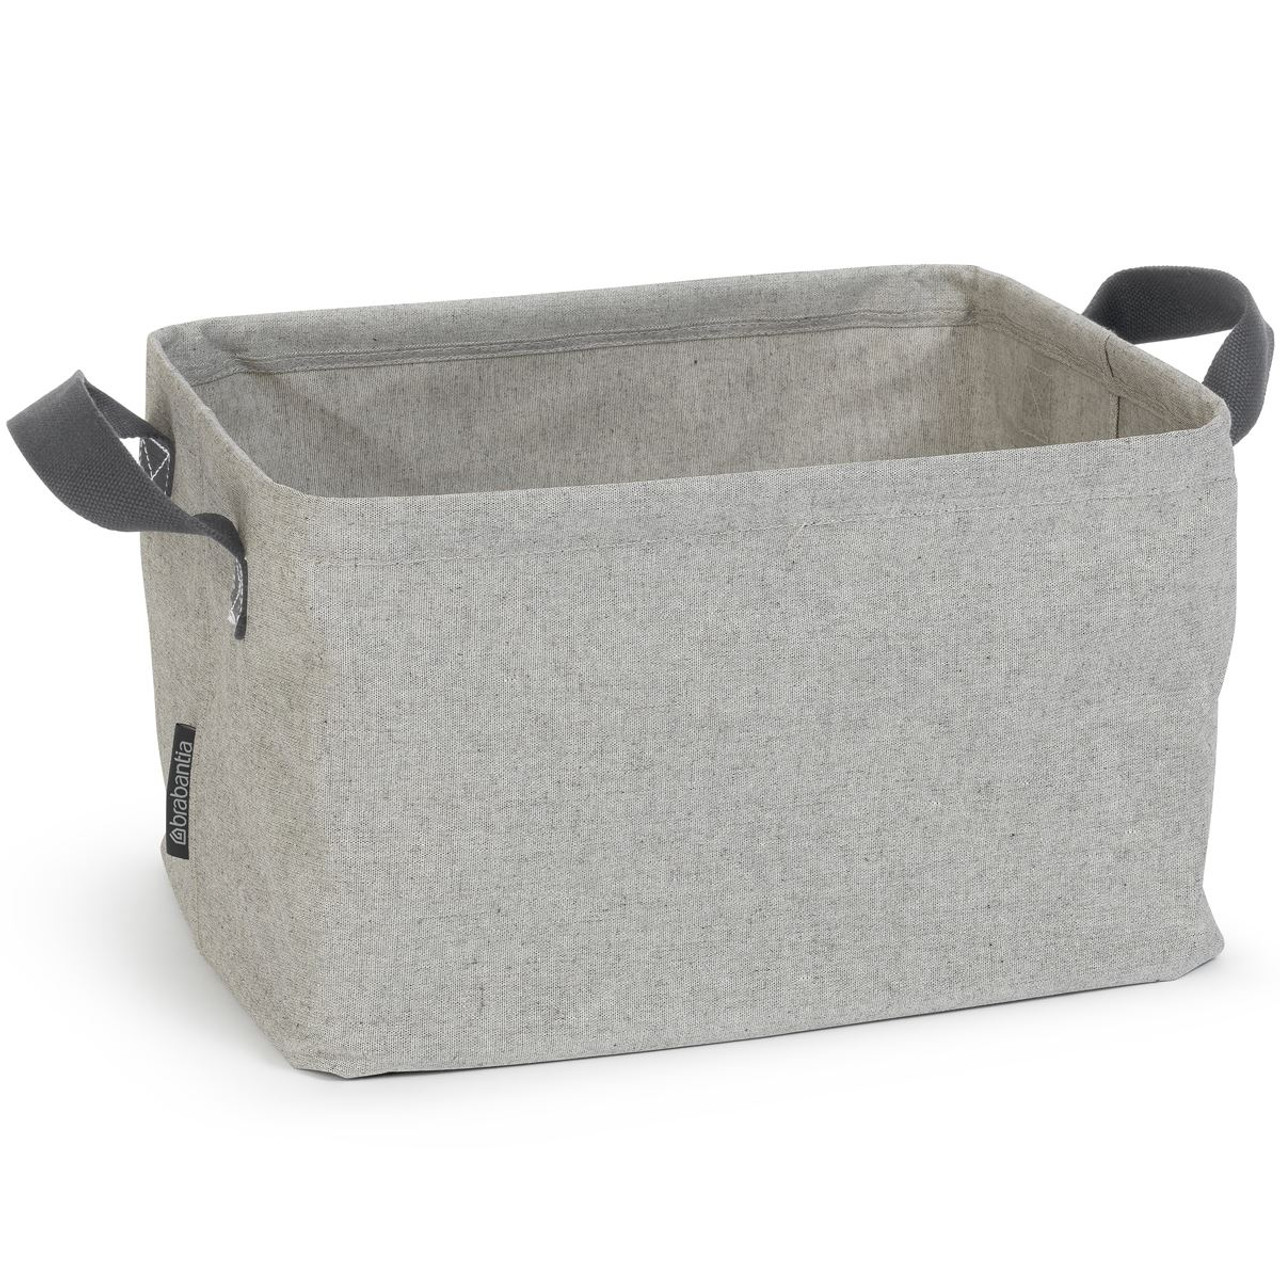 Brabantia Foldable Laundry Basket